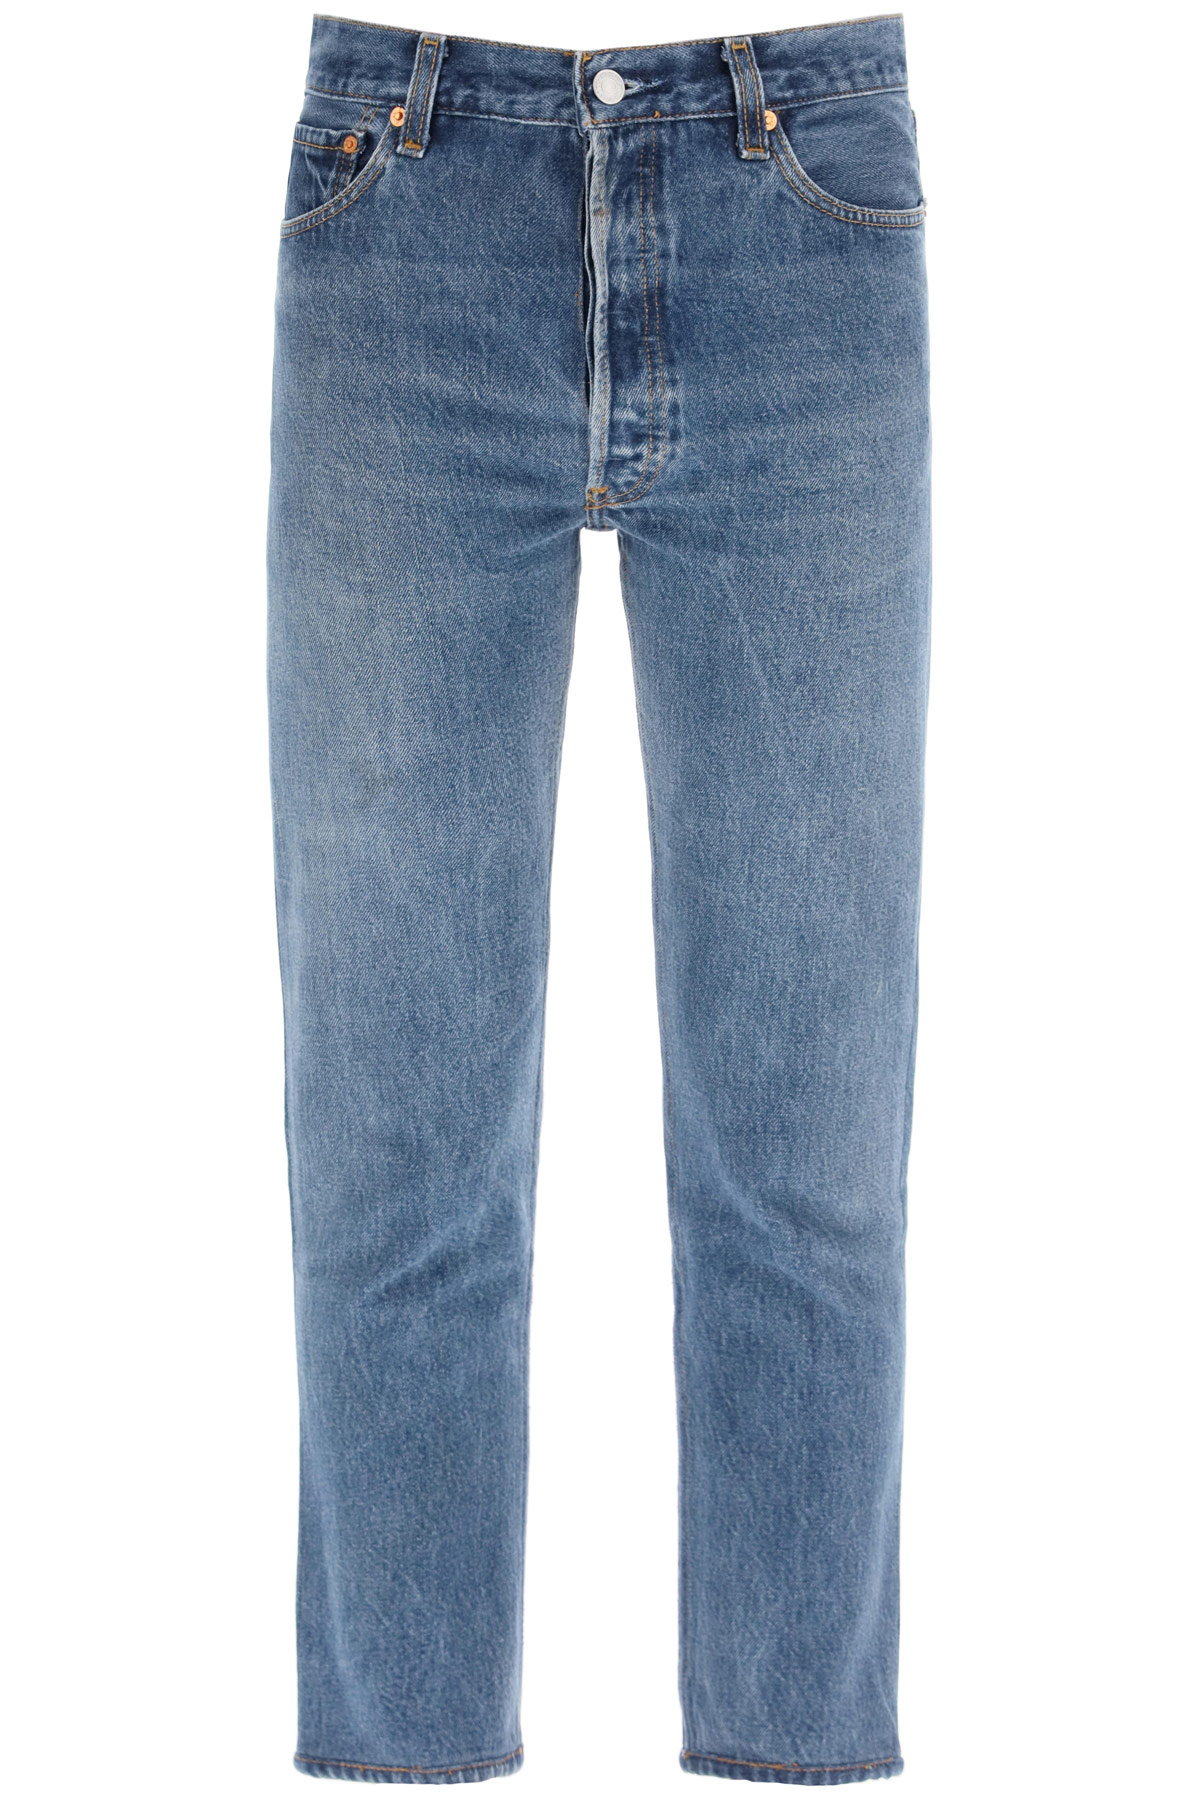 Re/done jeans high rise ankle crop x levi's